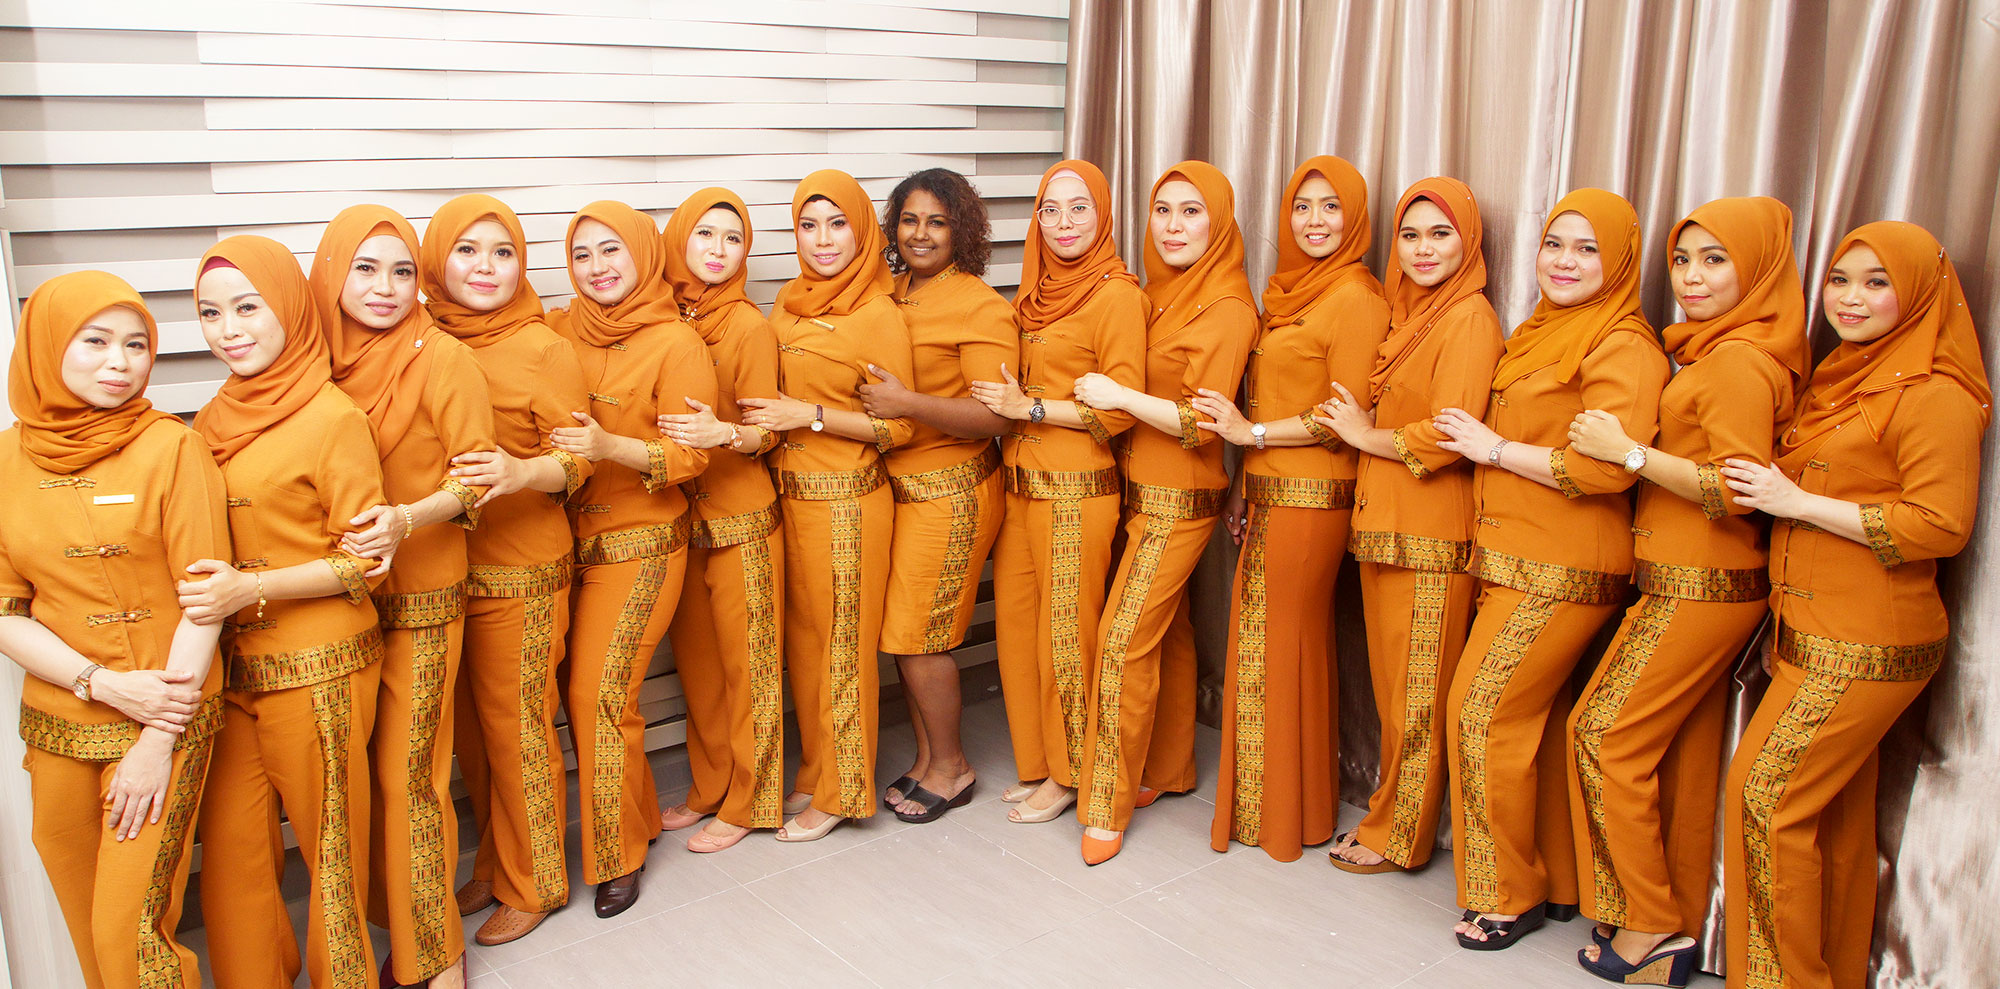 CK Beauty - Spa Beauty Center - Hubungi / Contact